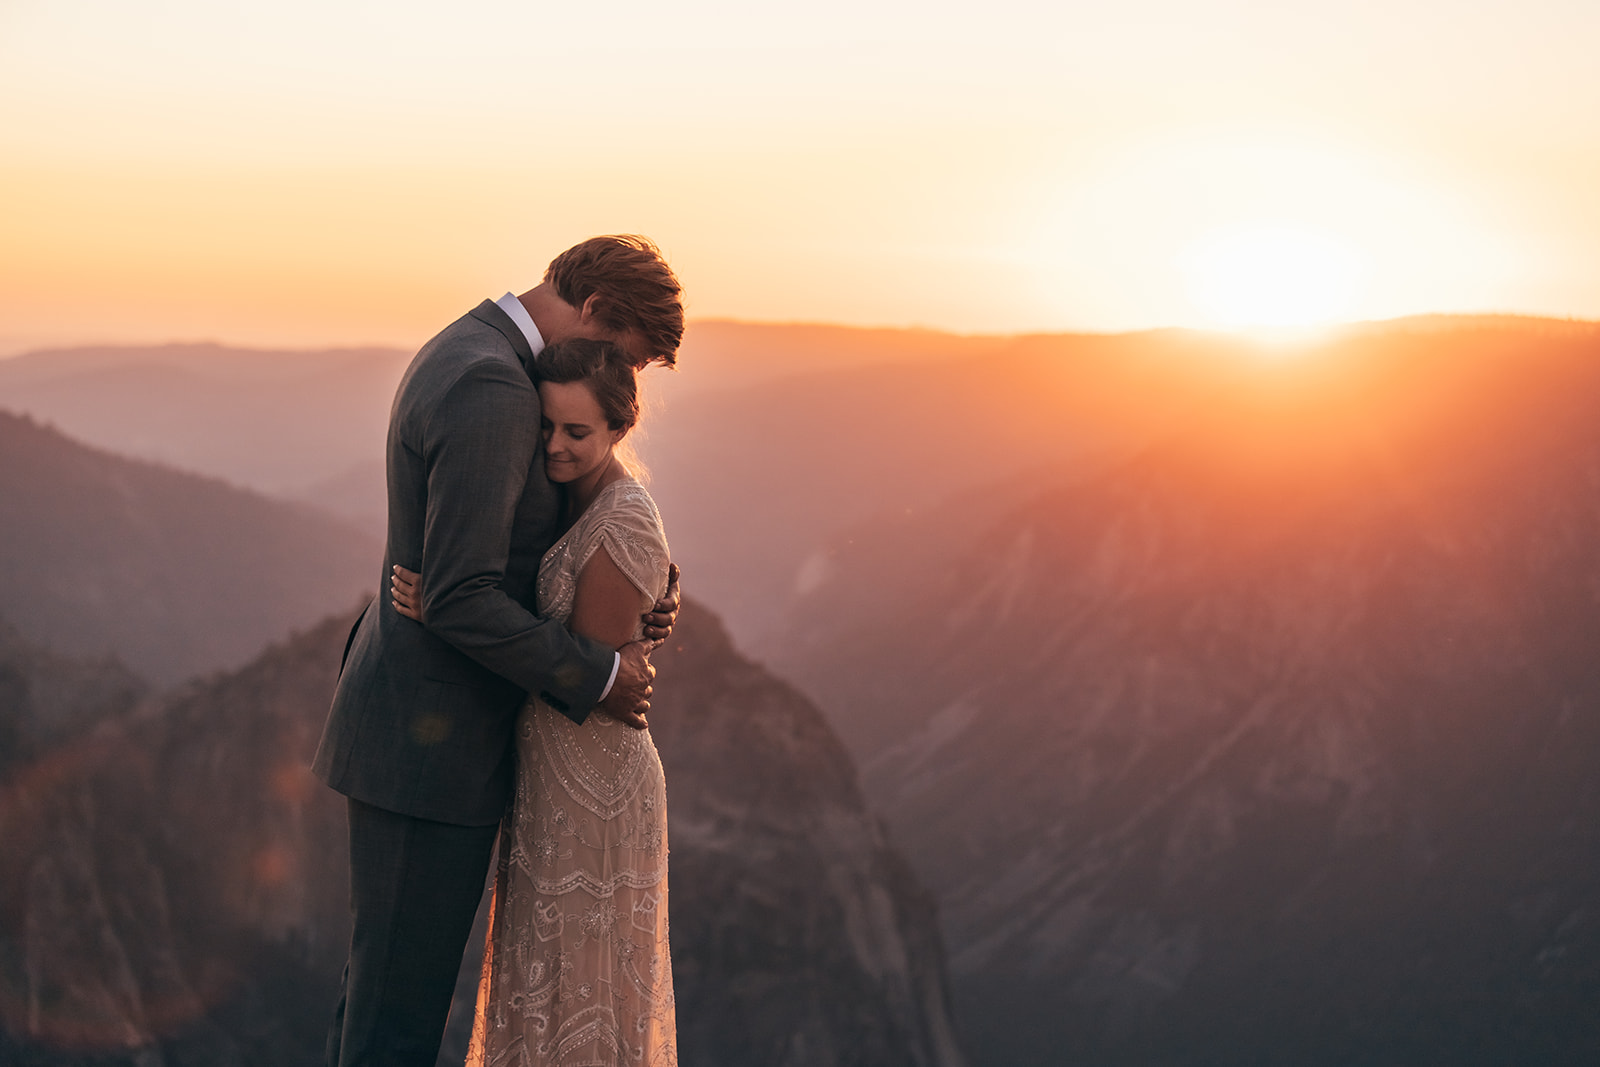 couple-hug-mountains-sunset